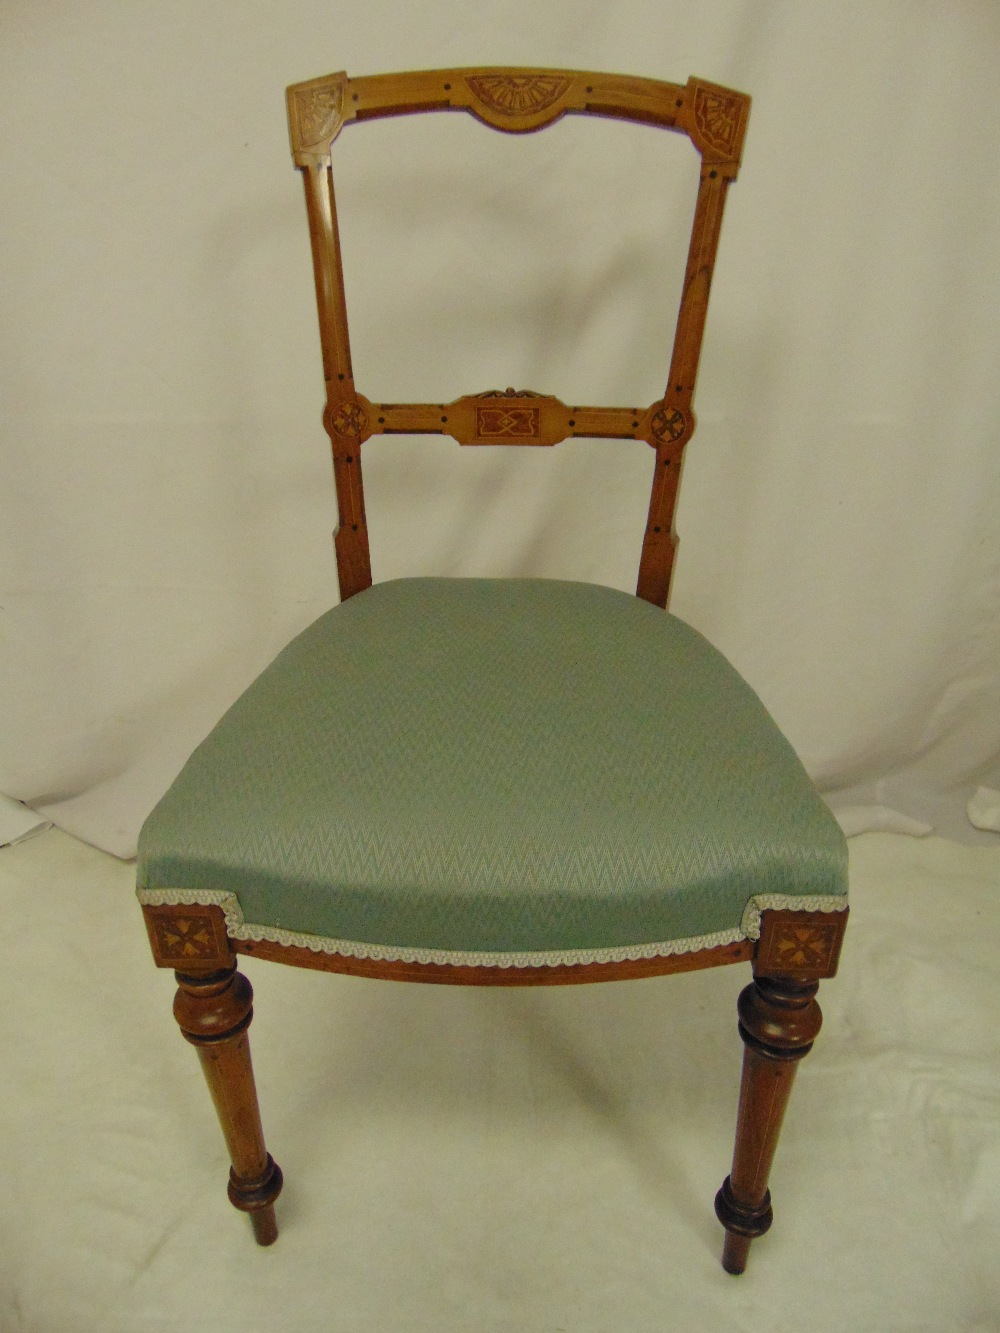 Lot 21 - A mahogany inlaid occasional chair on four turned tubular legs